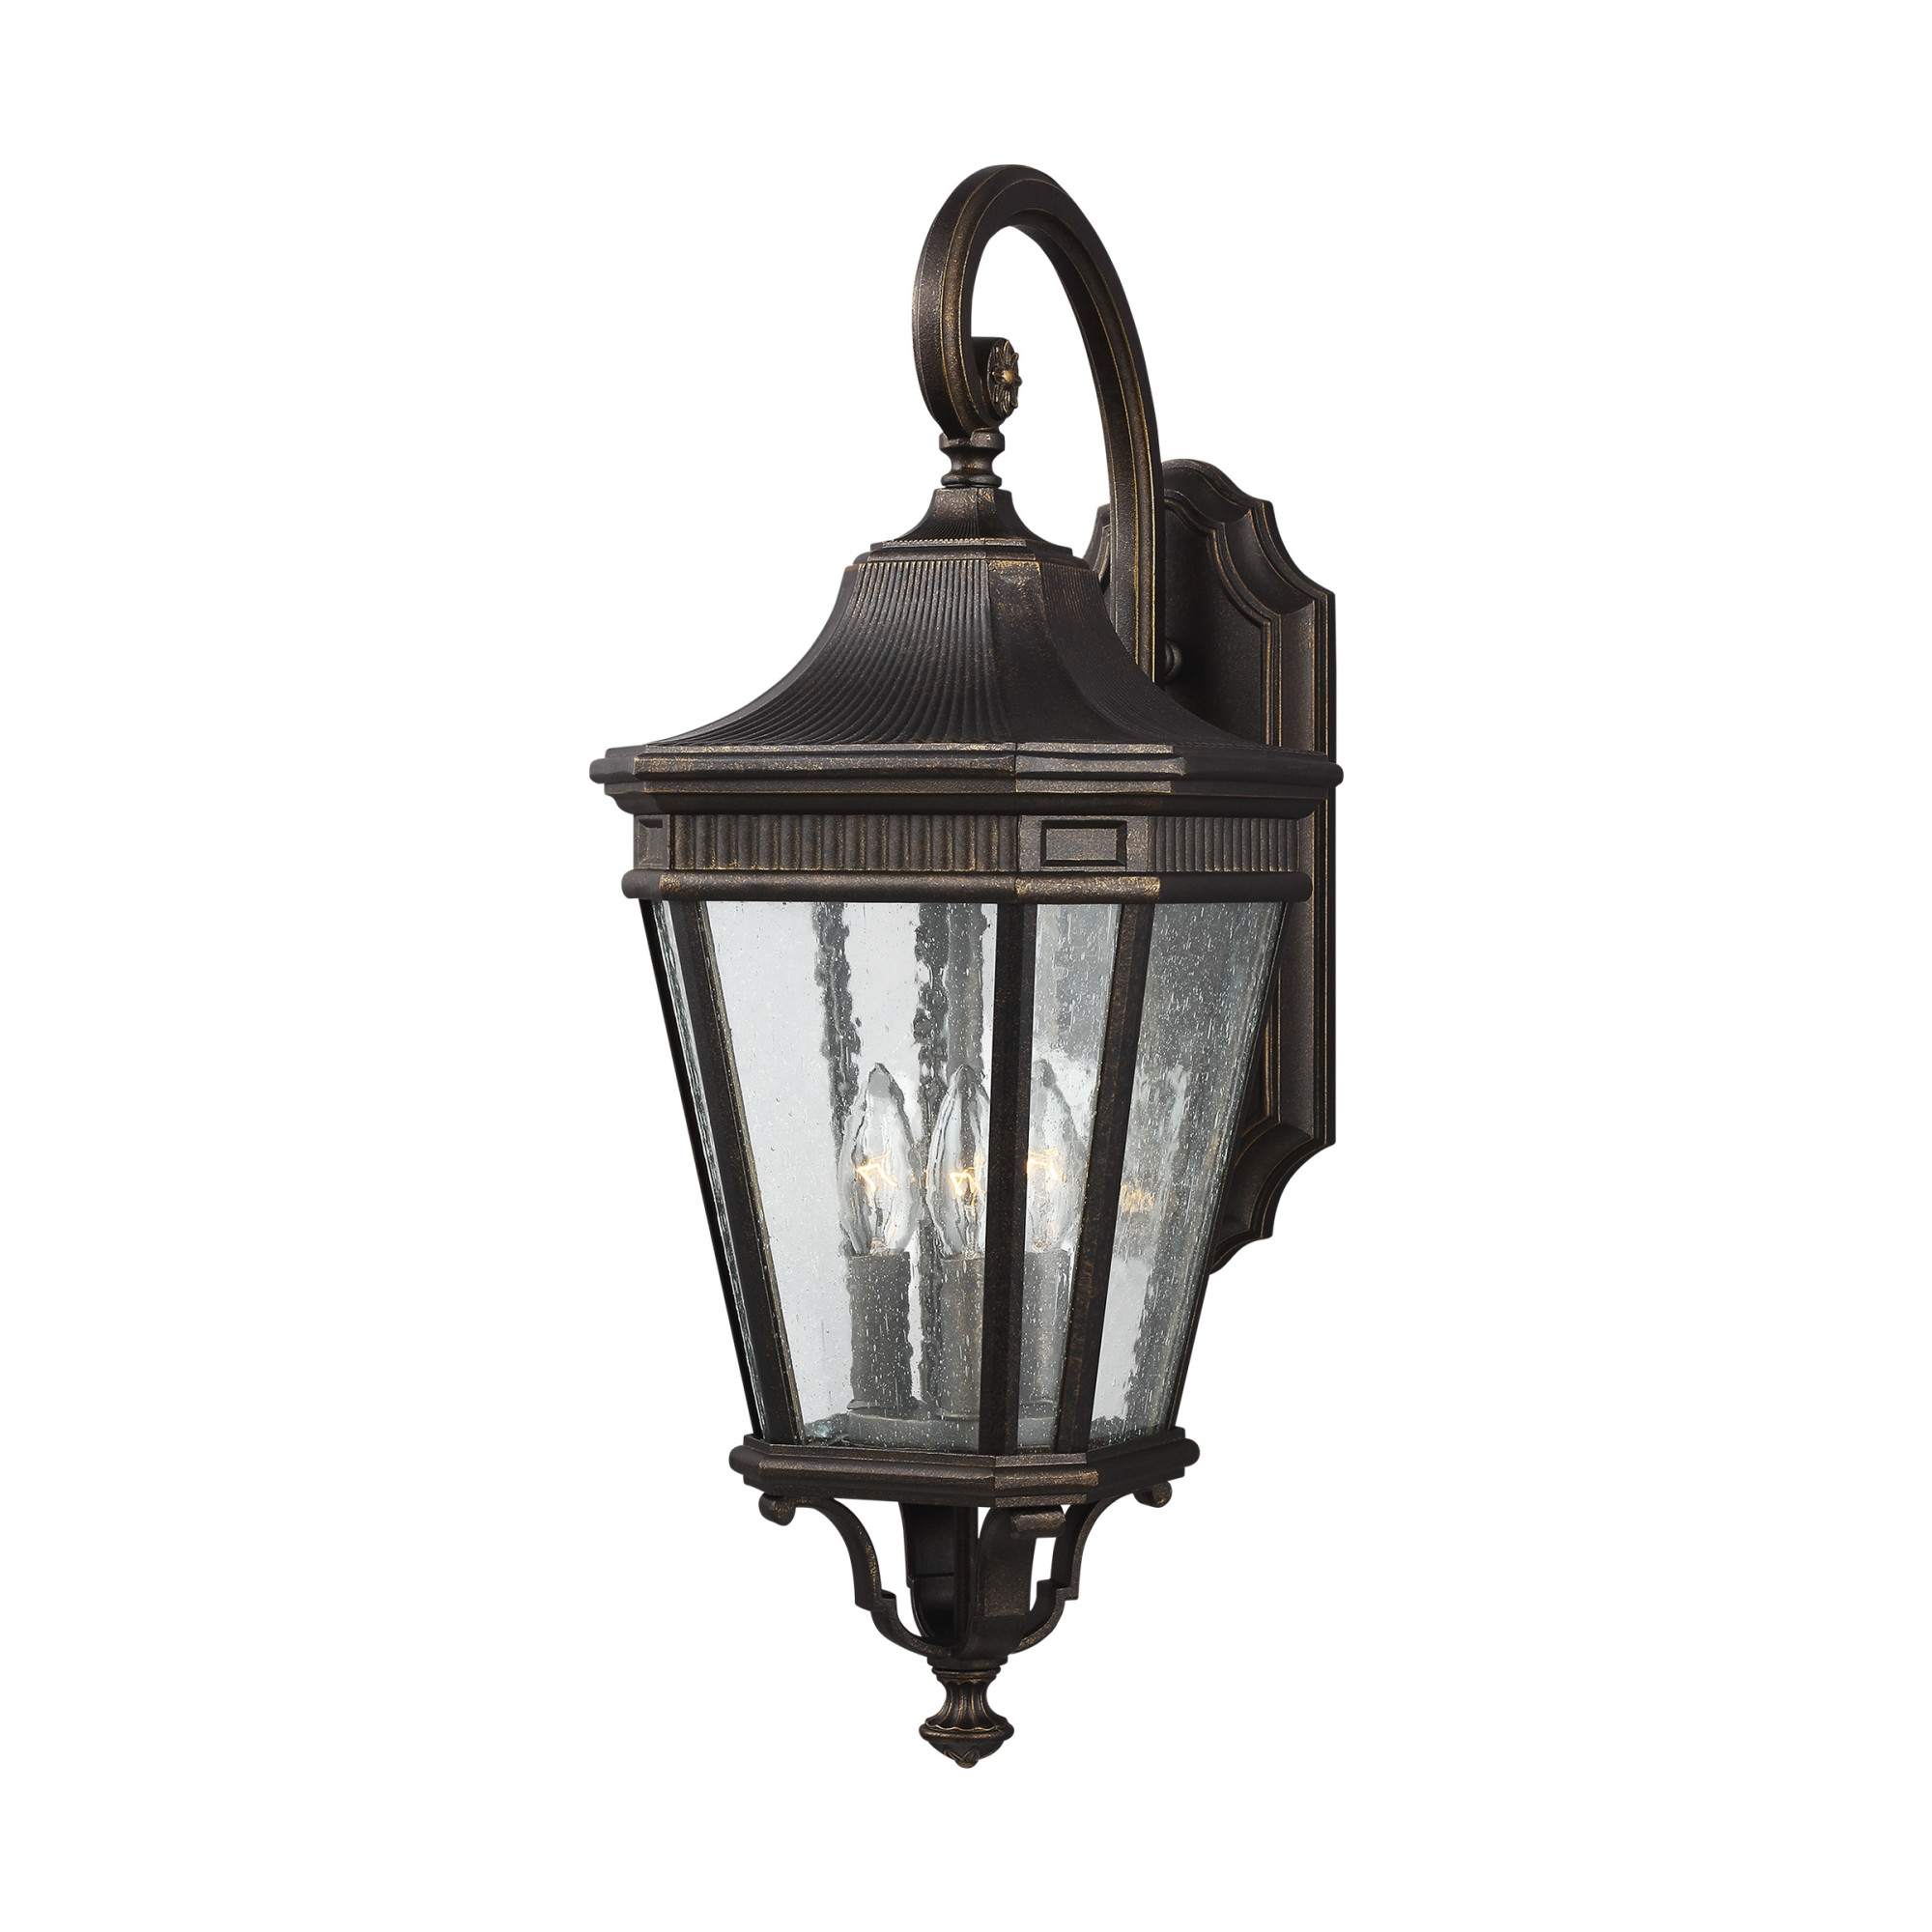 Details About Feiss Ol5422 Cotswold Lane 3 Light 23 4 Tall Outdoor Wall Sconce With Seeded